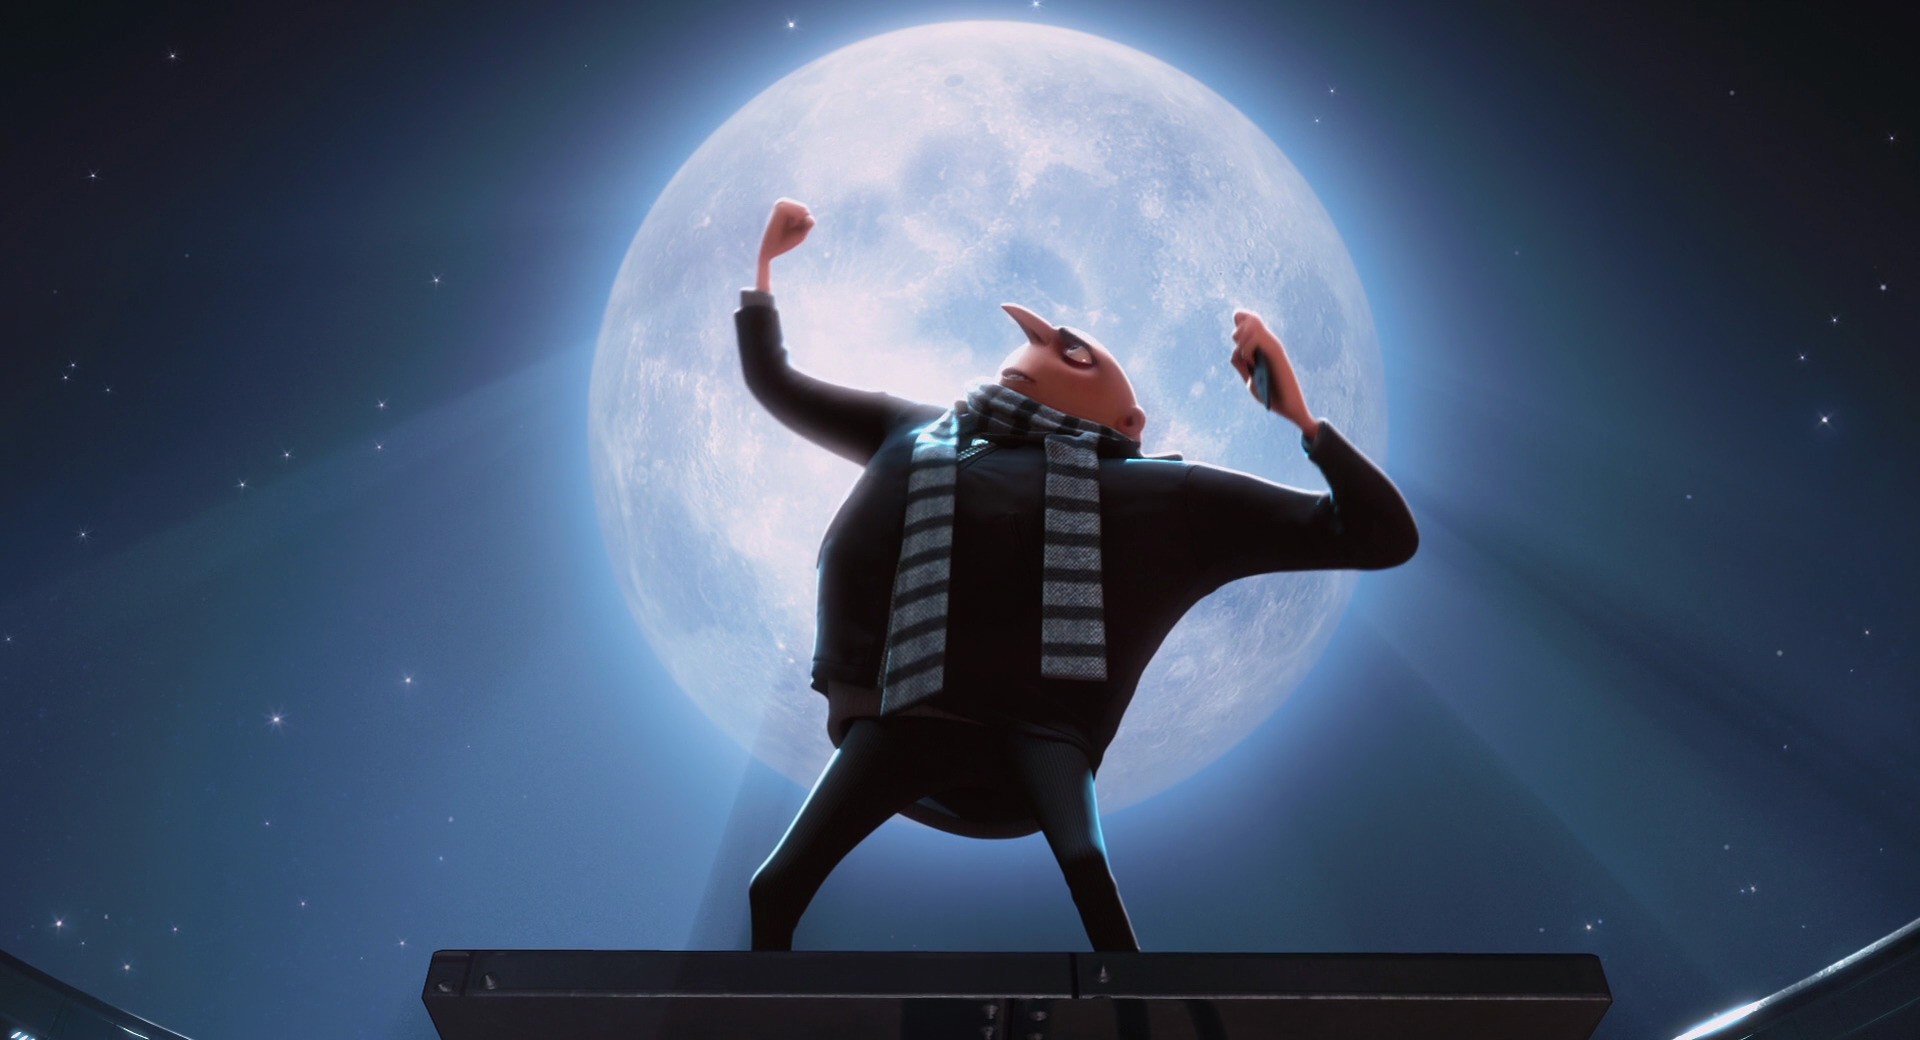 despicable-me-disneyscreencaps.com-1249